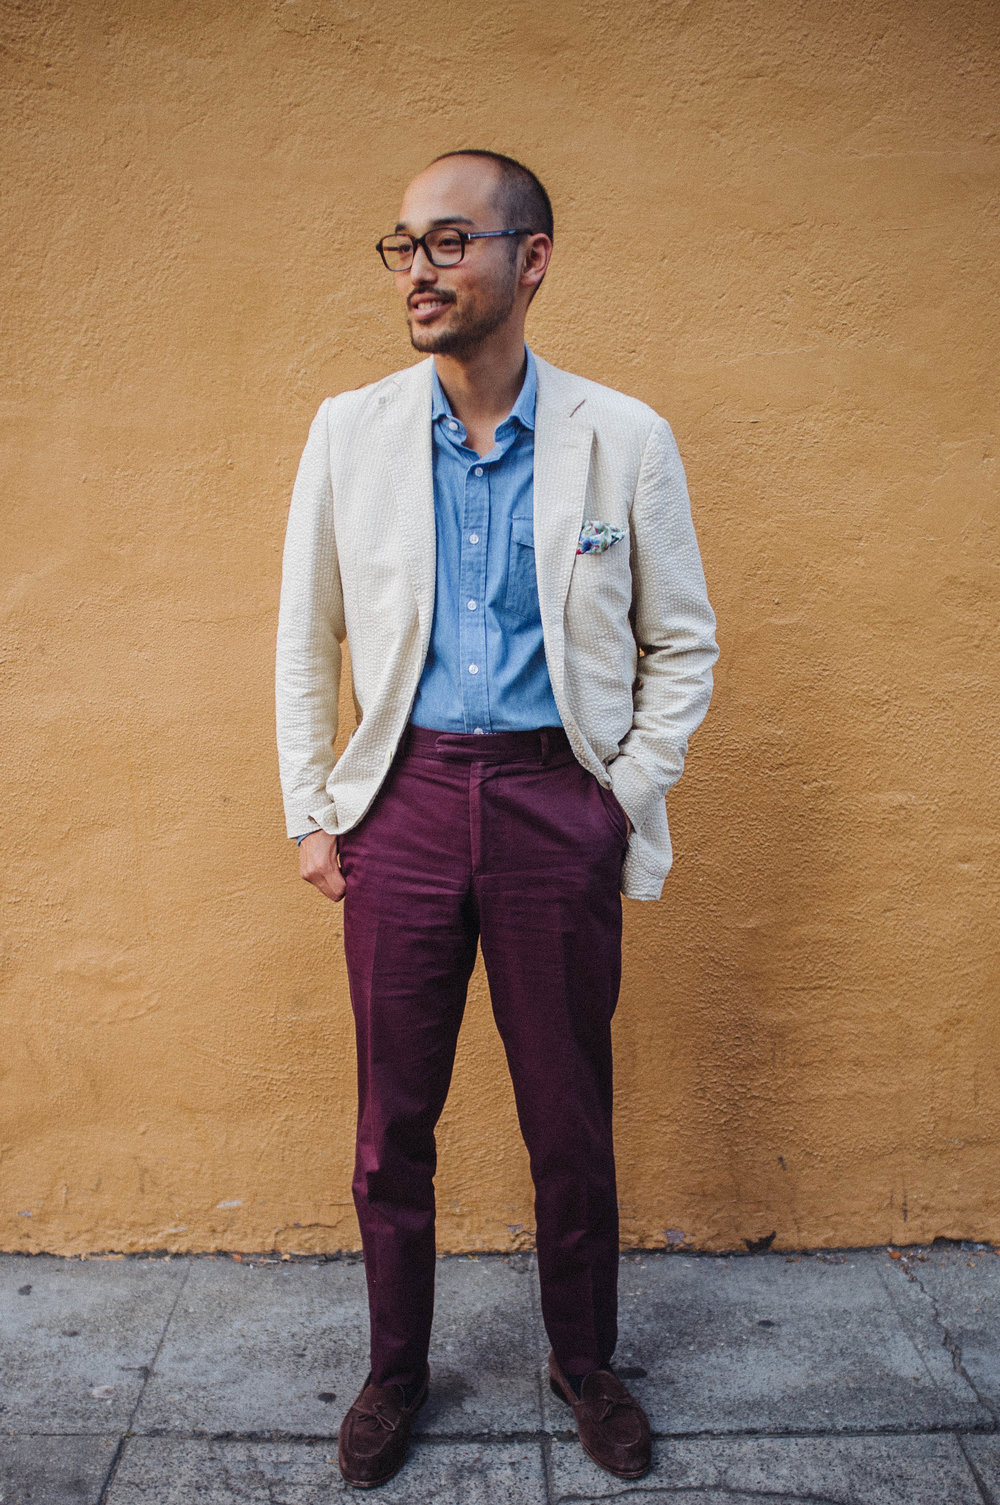 Sports Coat - Gant By Michael Bastian | Shirt - Proper Cloth | Pocket Square - Vintage | Chinos - Epaulet | Shoes - Carmina Shoemaker